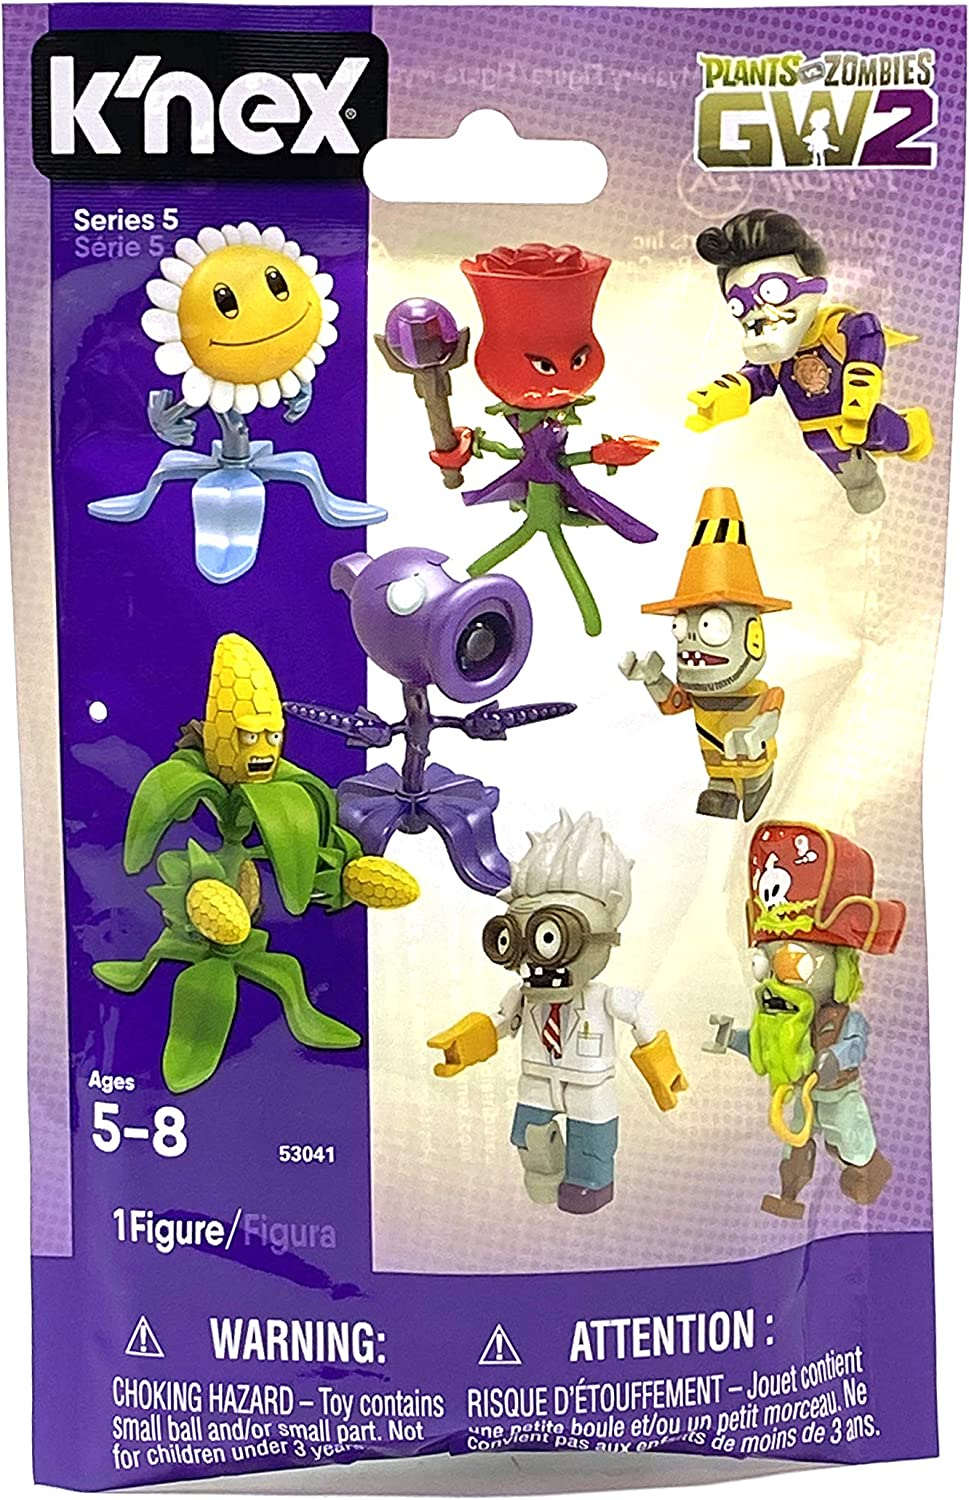 K'NEX GW2 Plants vs. Zombies Series 5 Mystery Pack